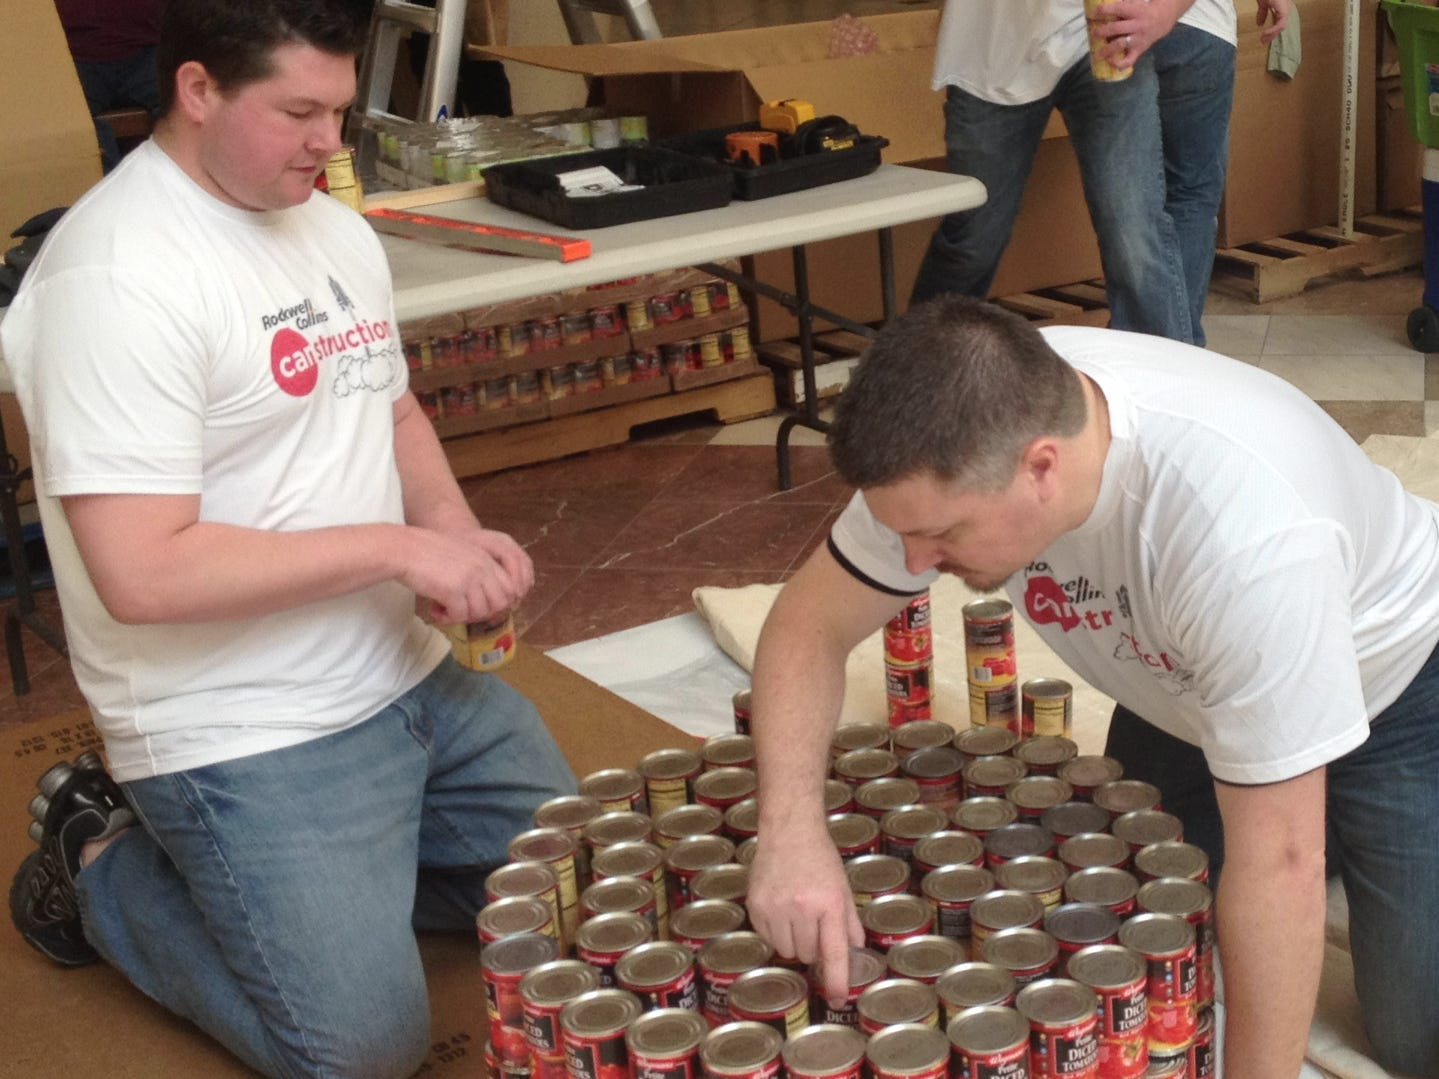 Eric Chidester, left, a Binghamton resident and structural engineer at Rockwell Collins, and Justin Lis, a Town of Maine resident and engineering manager at Rockwell Collins, help create the team's space shuttle on Sunday at the Oakdale Mall as part of Canstruction in March of 2014.